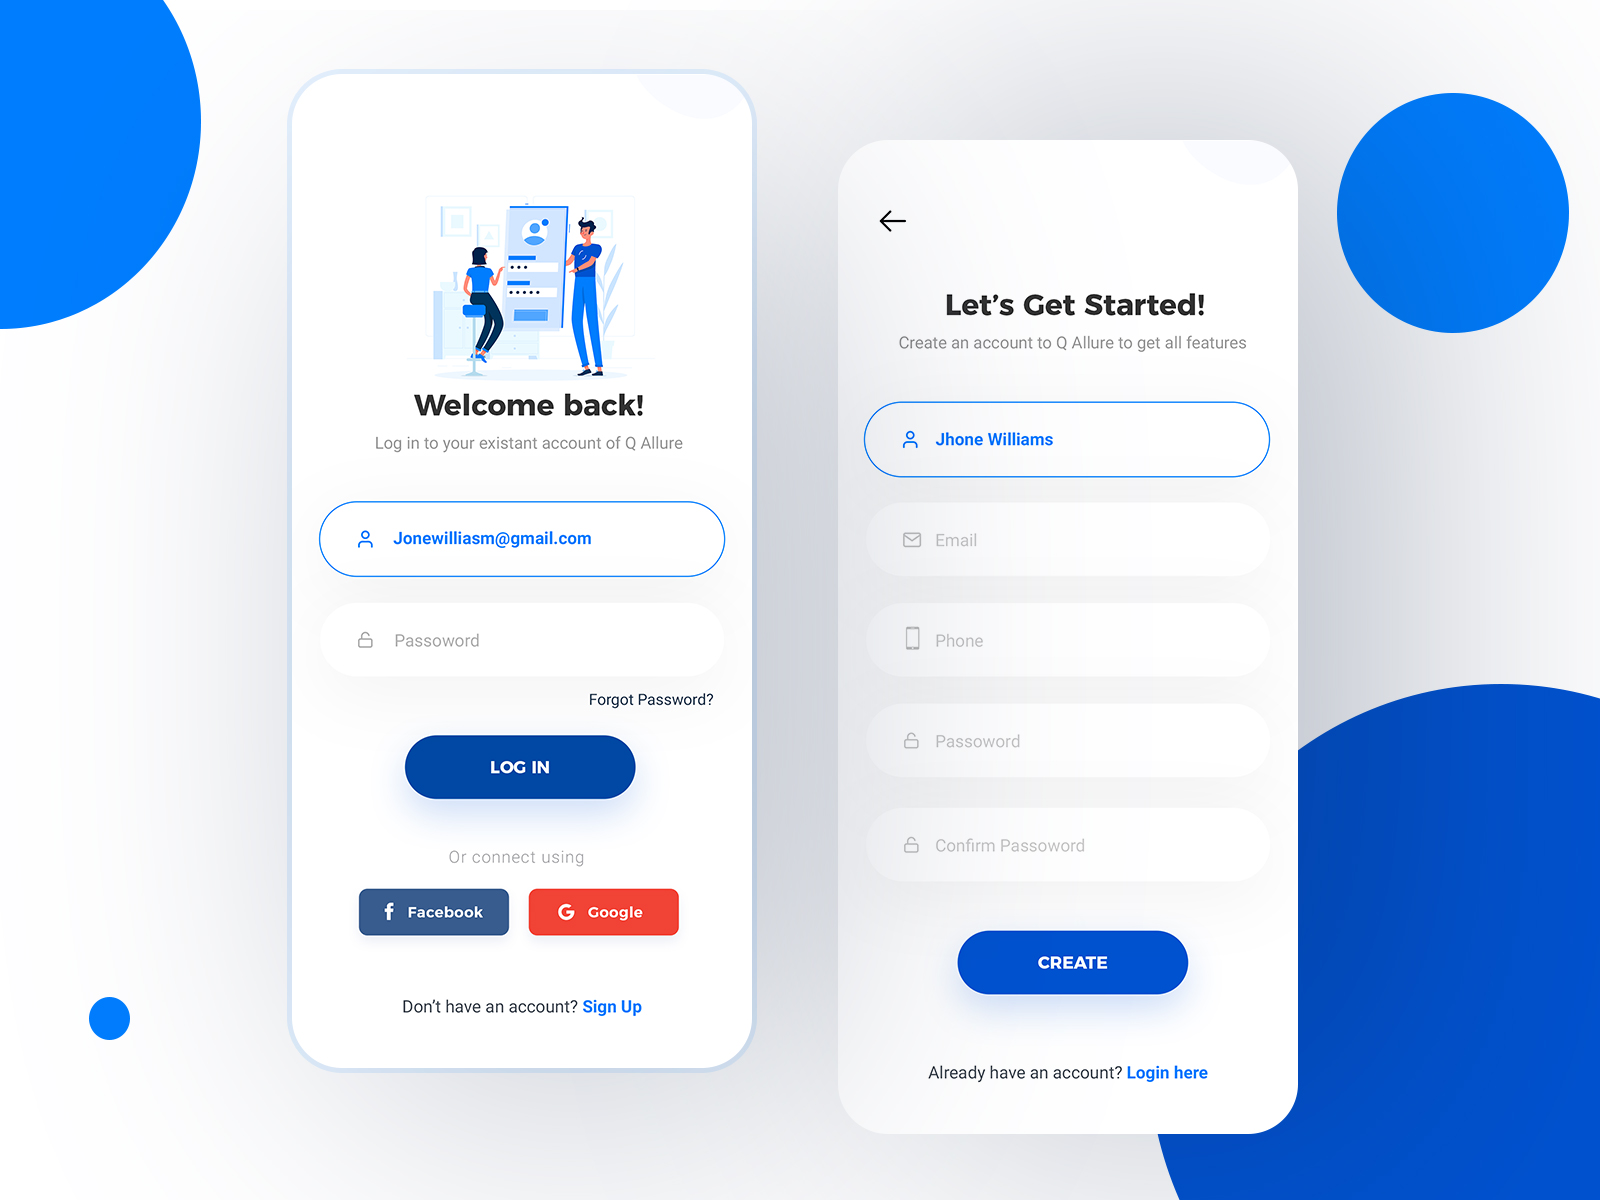 Mobile App Login and Signup UI Concept   UpLabs